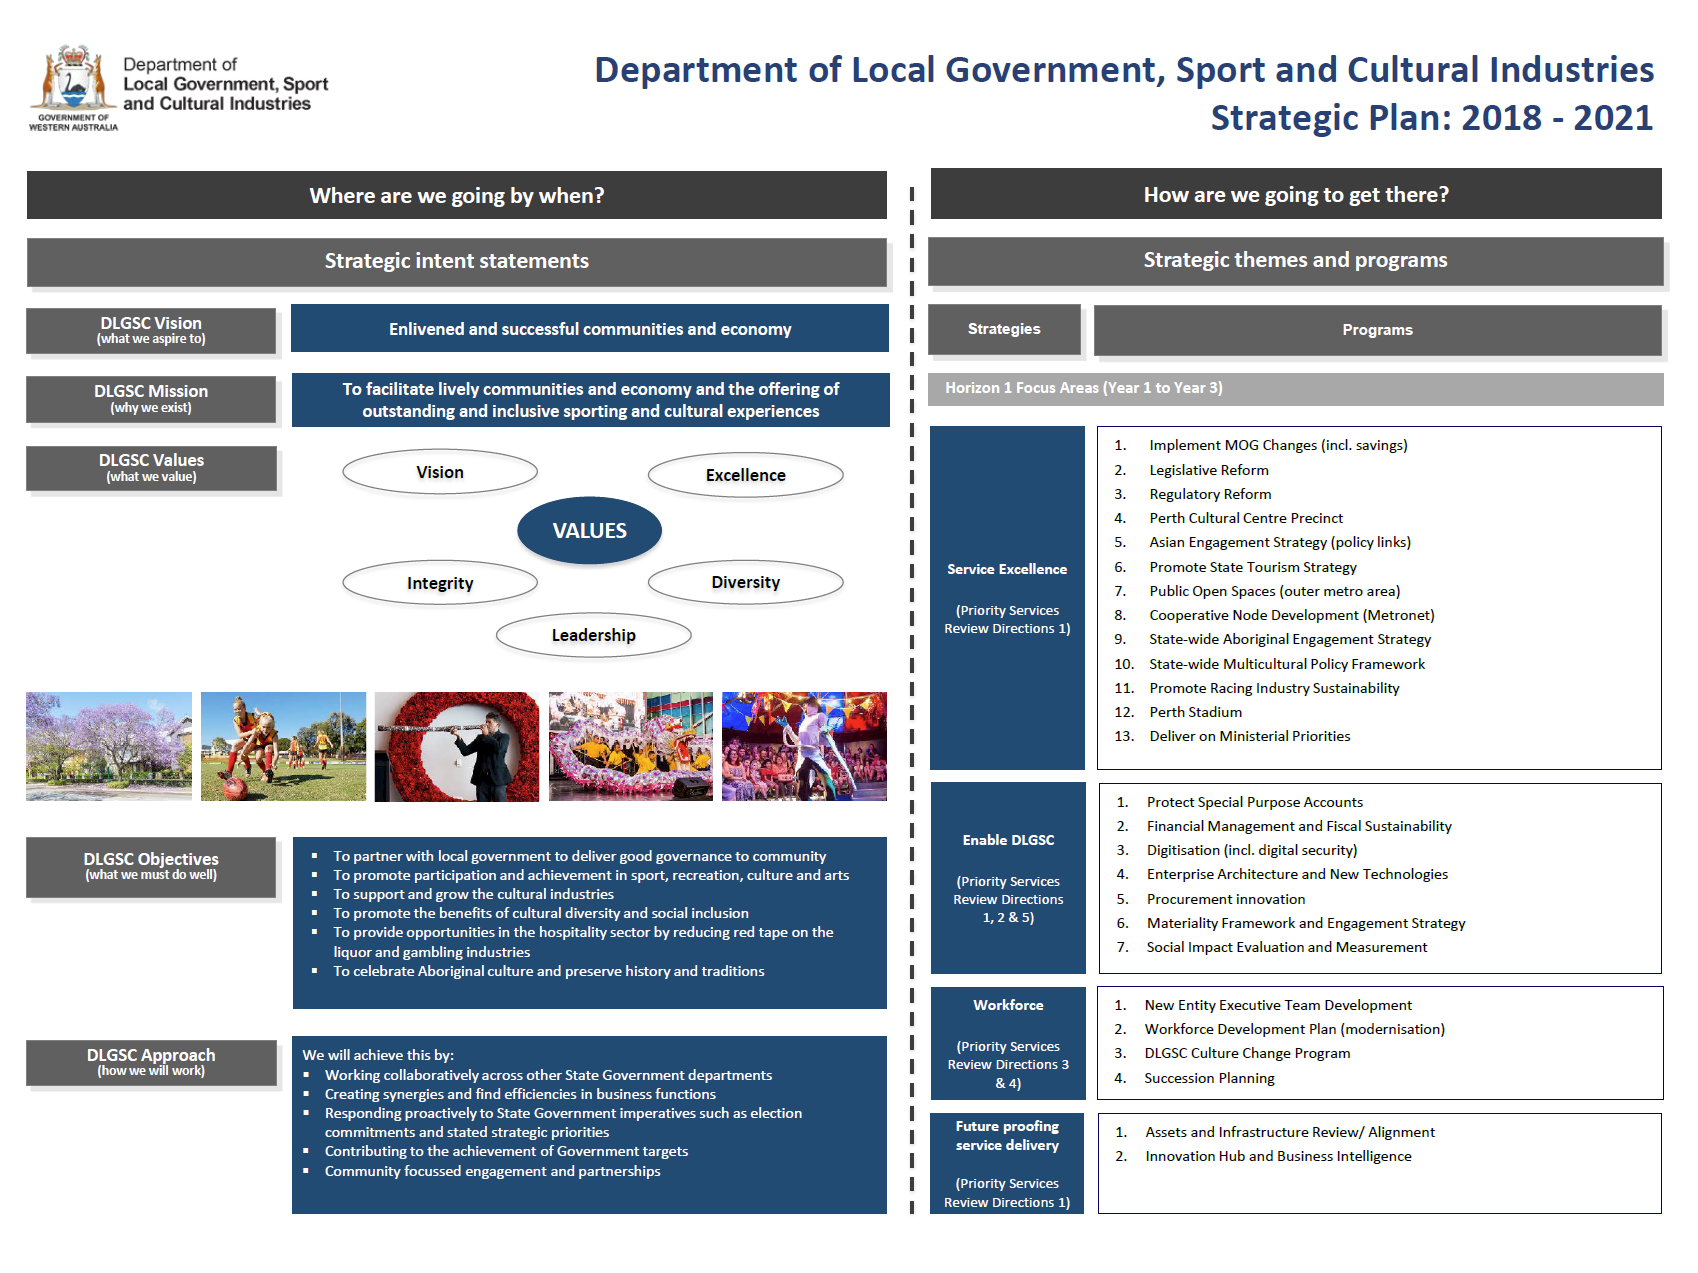 Y:\Website\Department of Local Government, Sport and Cultural Industries Strategic Plan 2018-2021